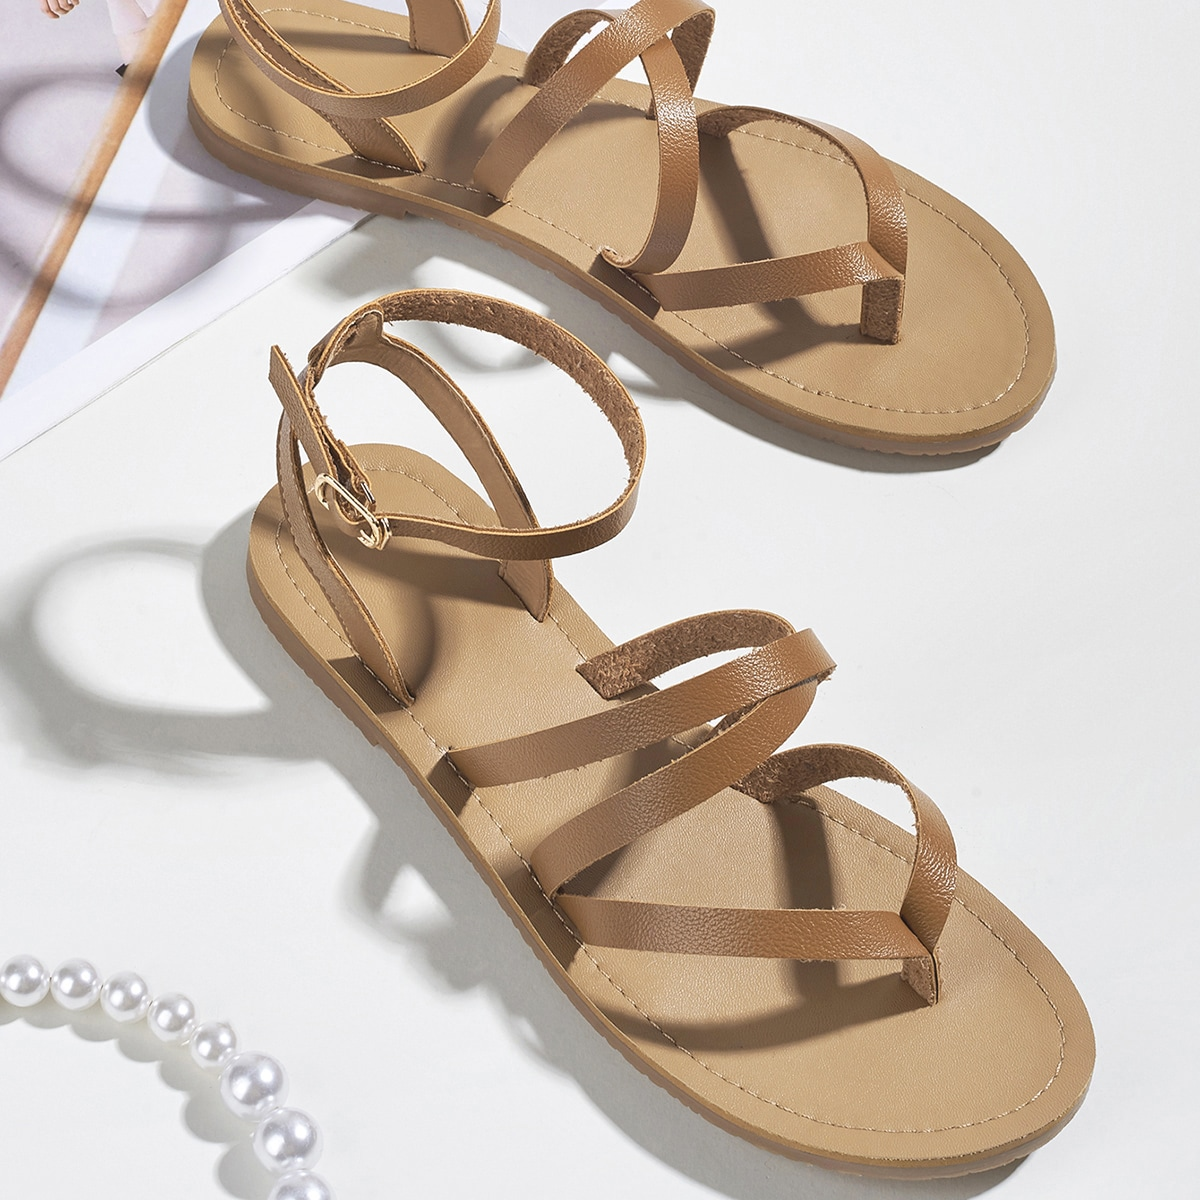 SHEIN / Toe Post Ankle Strap Strappy Sandals